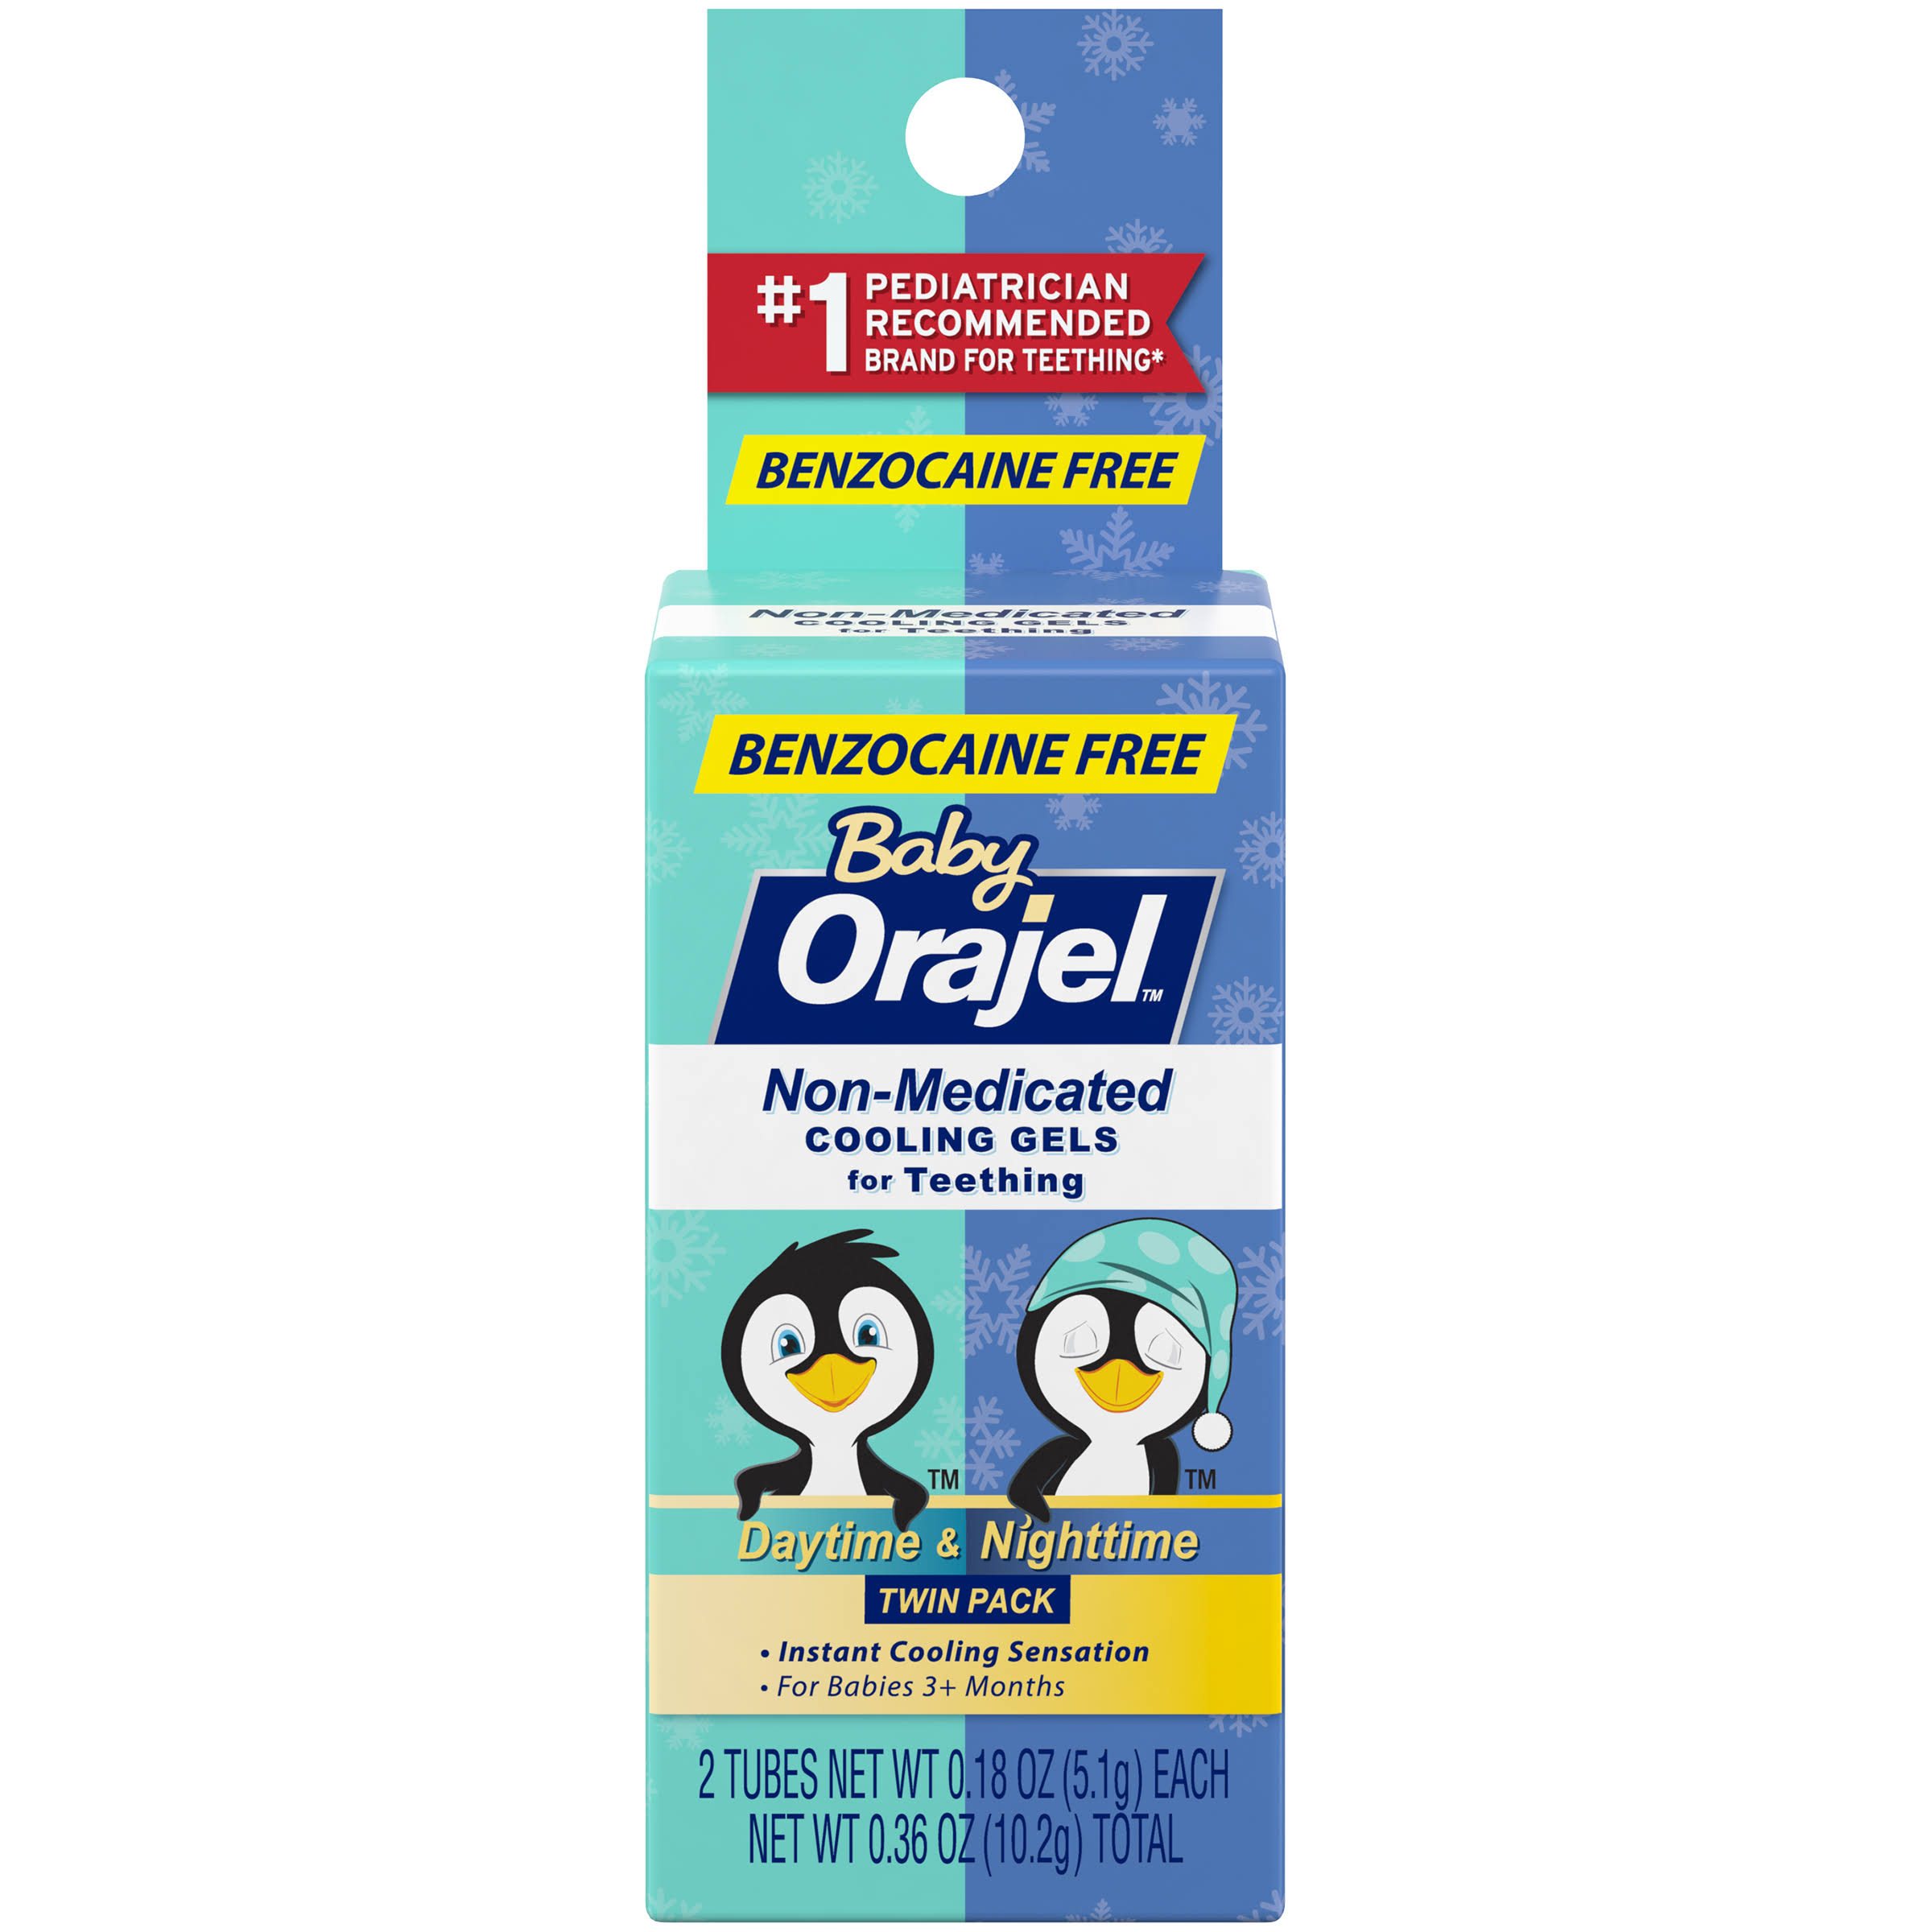 Baby Orajel Non-medicated Cooling Gels Teething Oral Care - Daytime Nighttime, 0.18oz